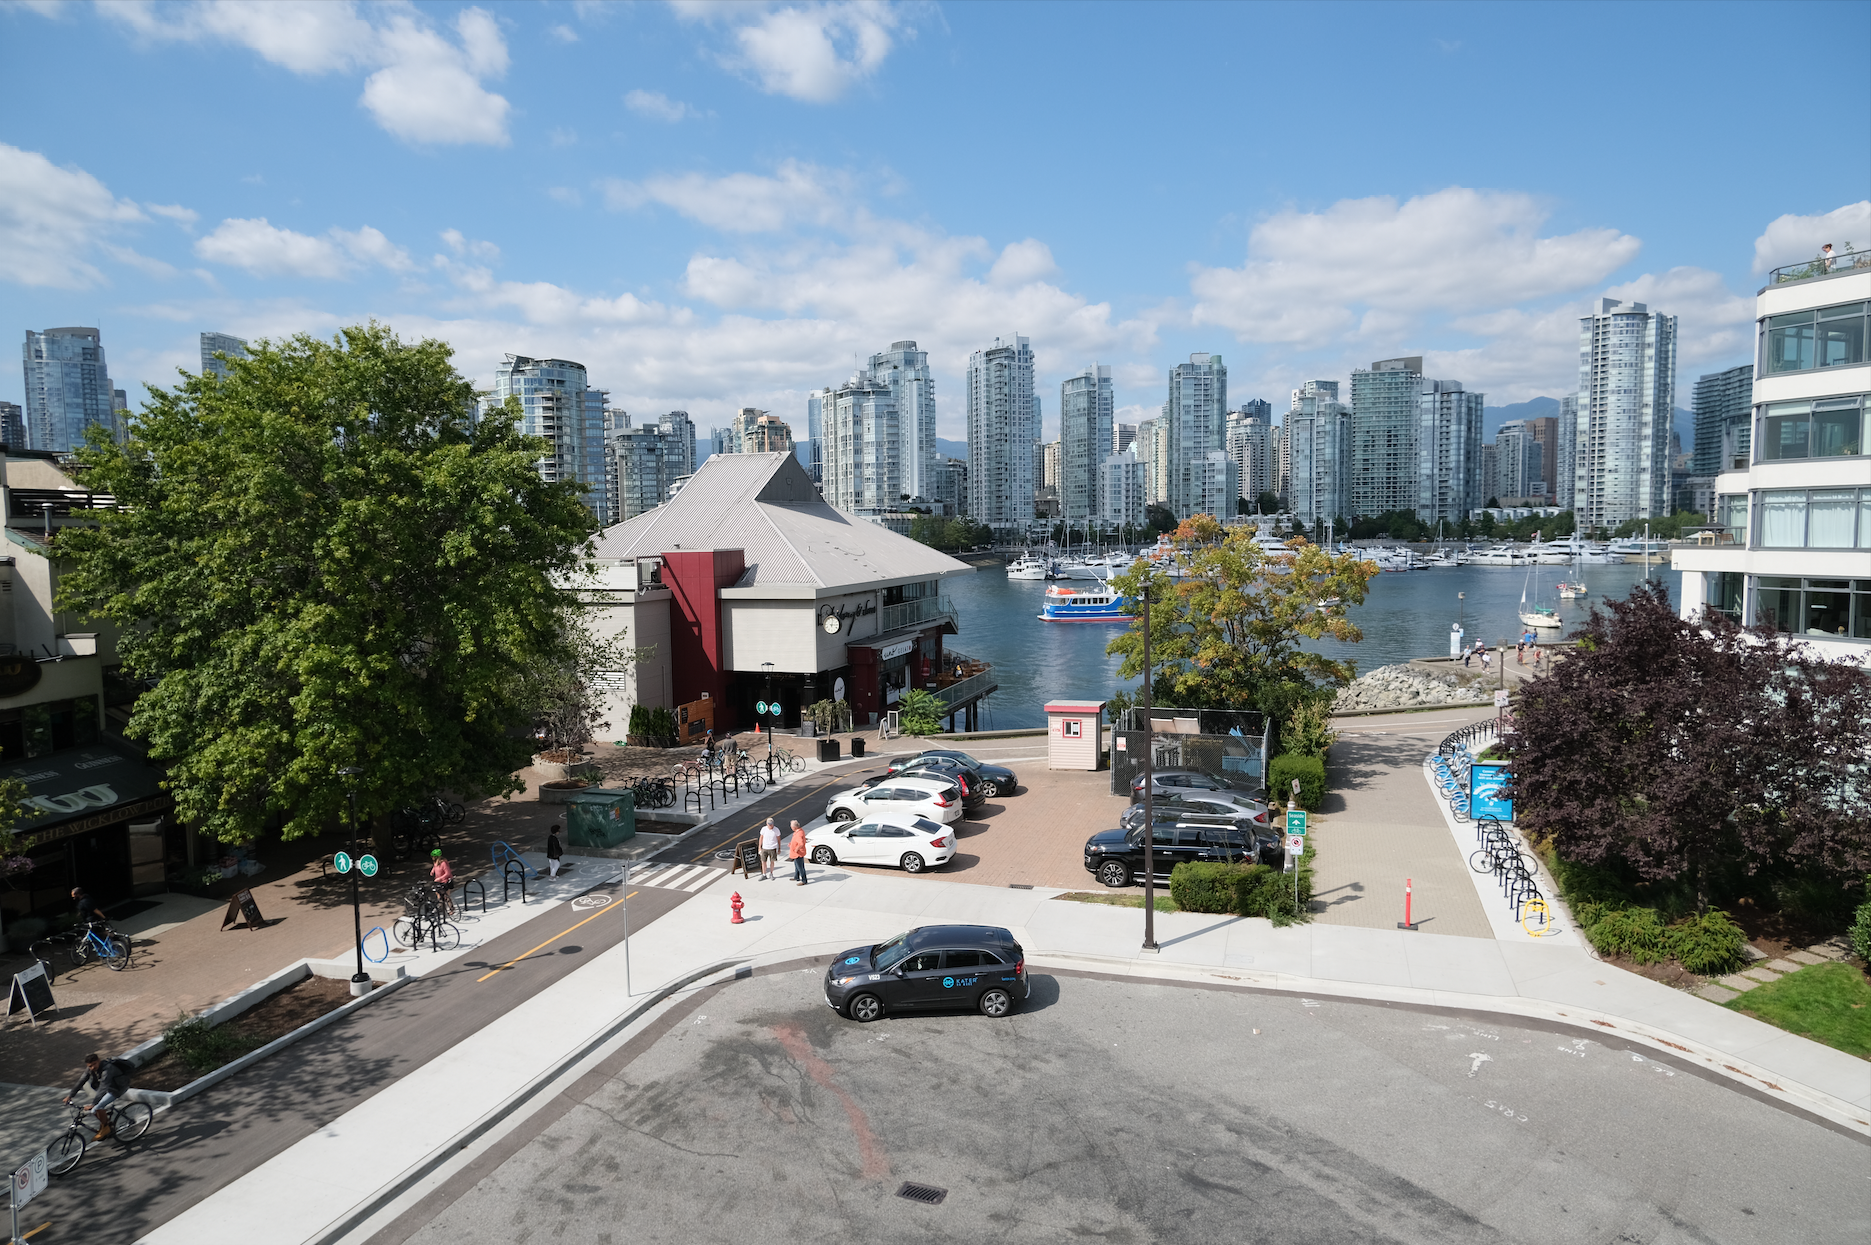 2 Bed/ 1 Bath – North Facing Water Views Over the Seawall – Available November 1